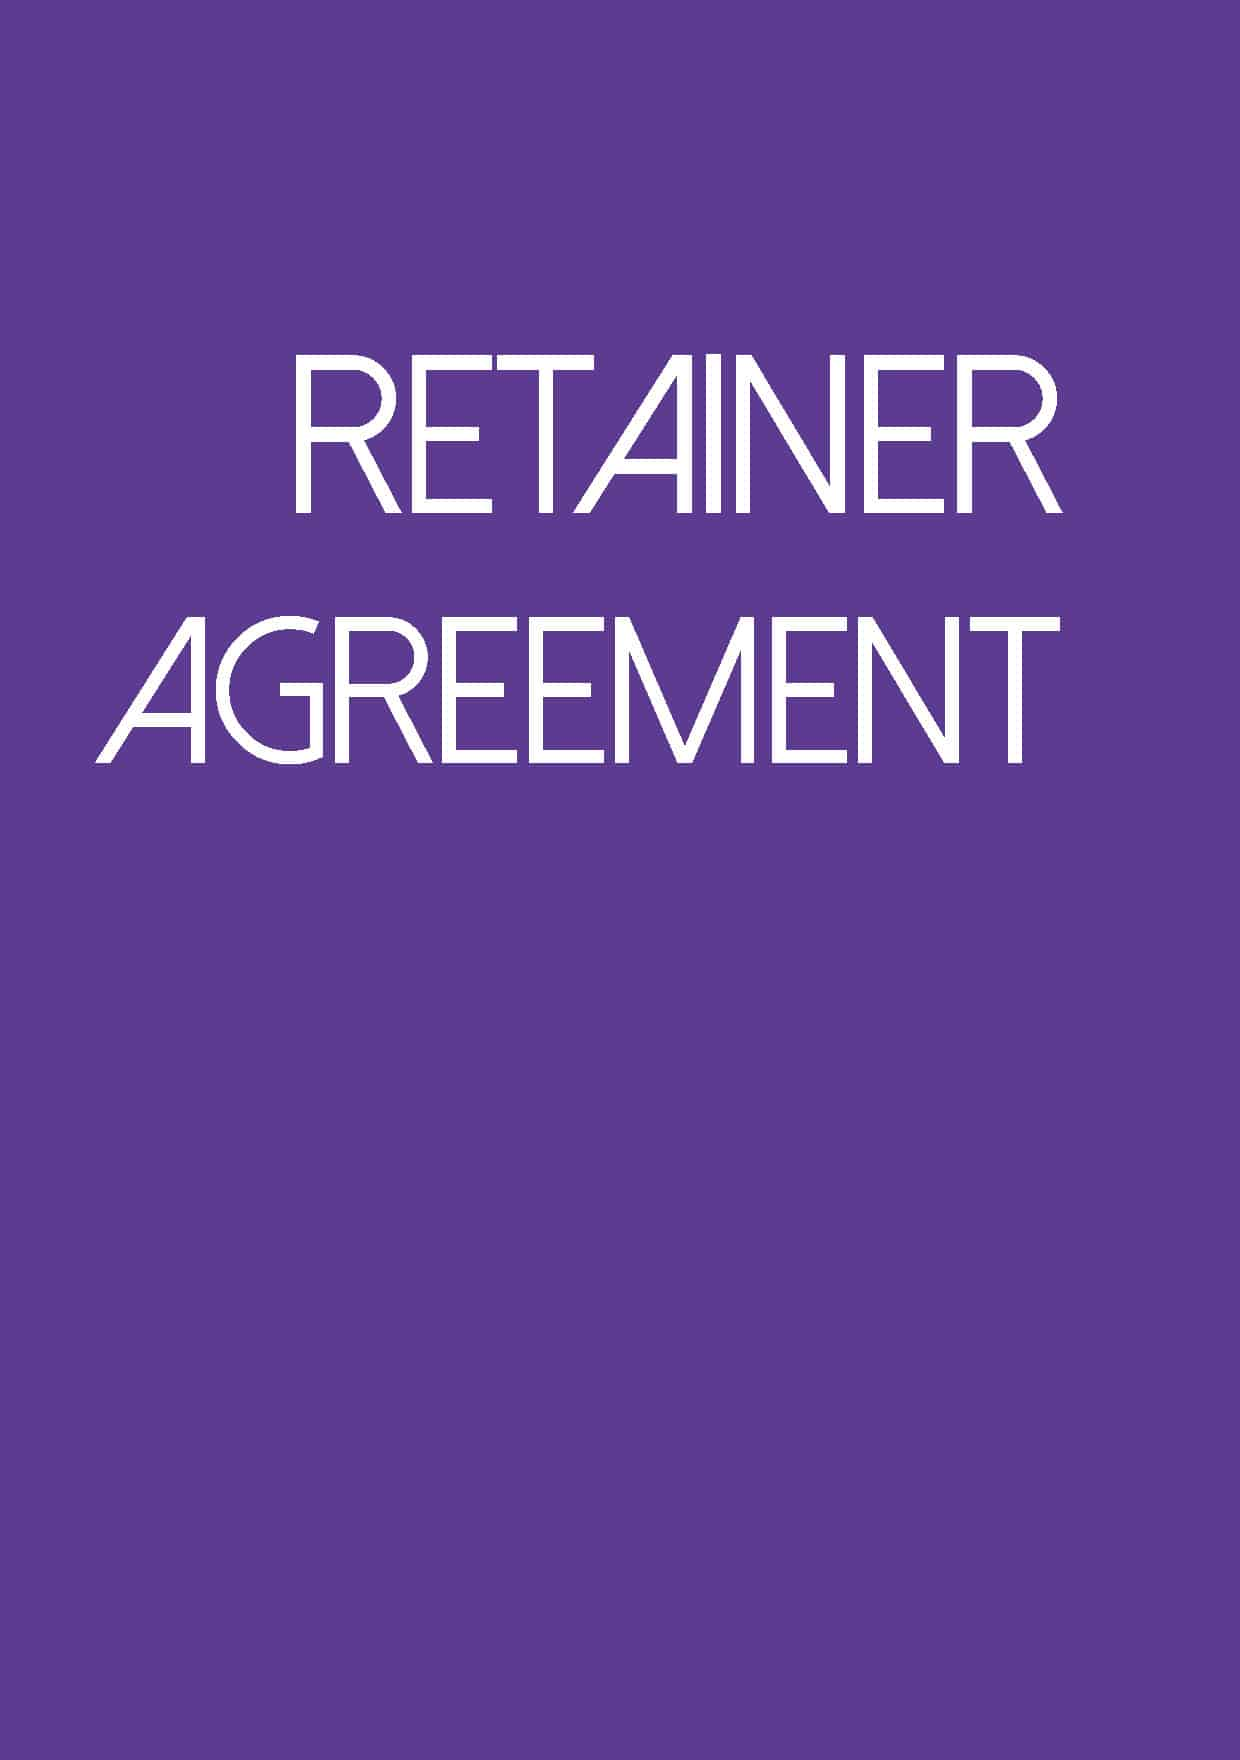 retainer agreement image